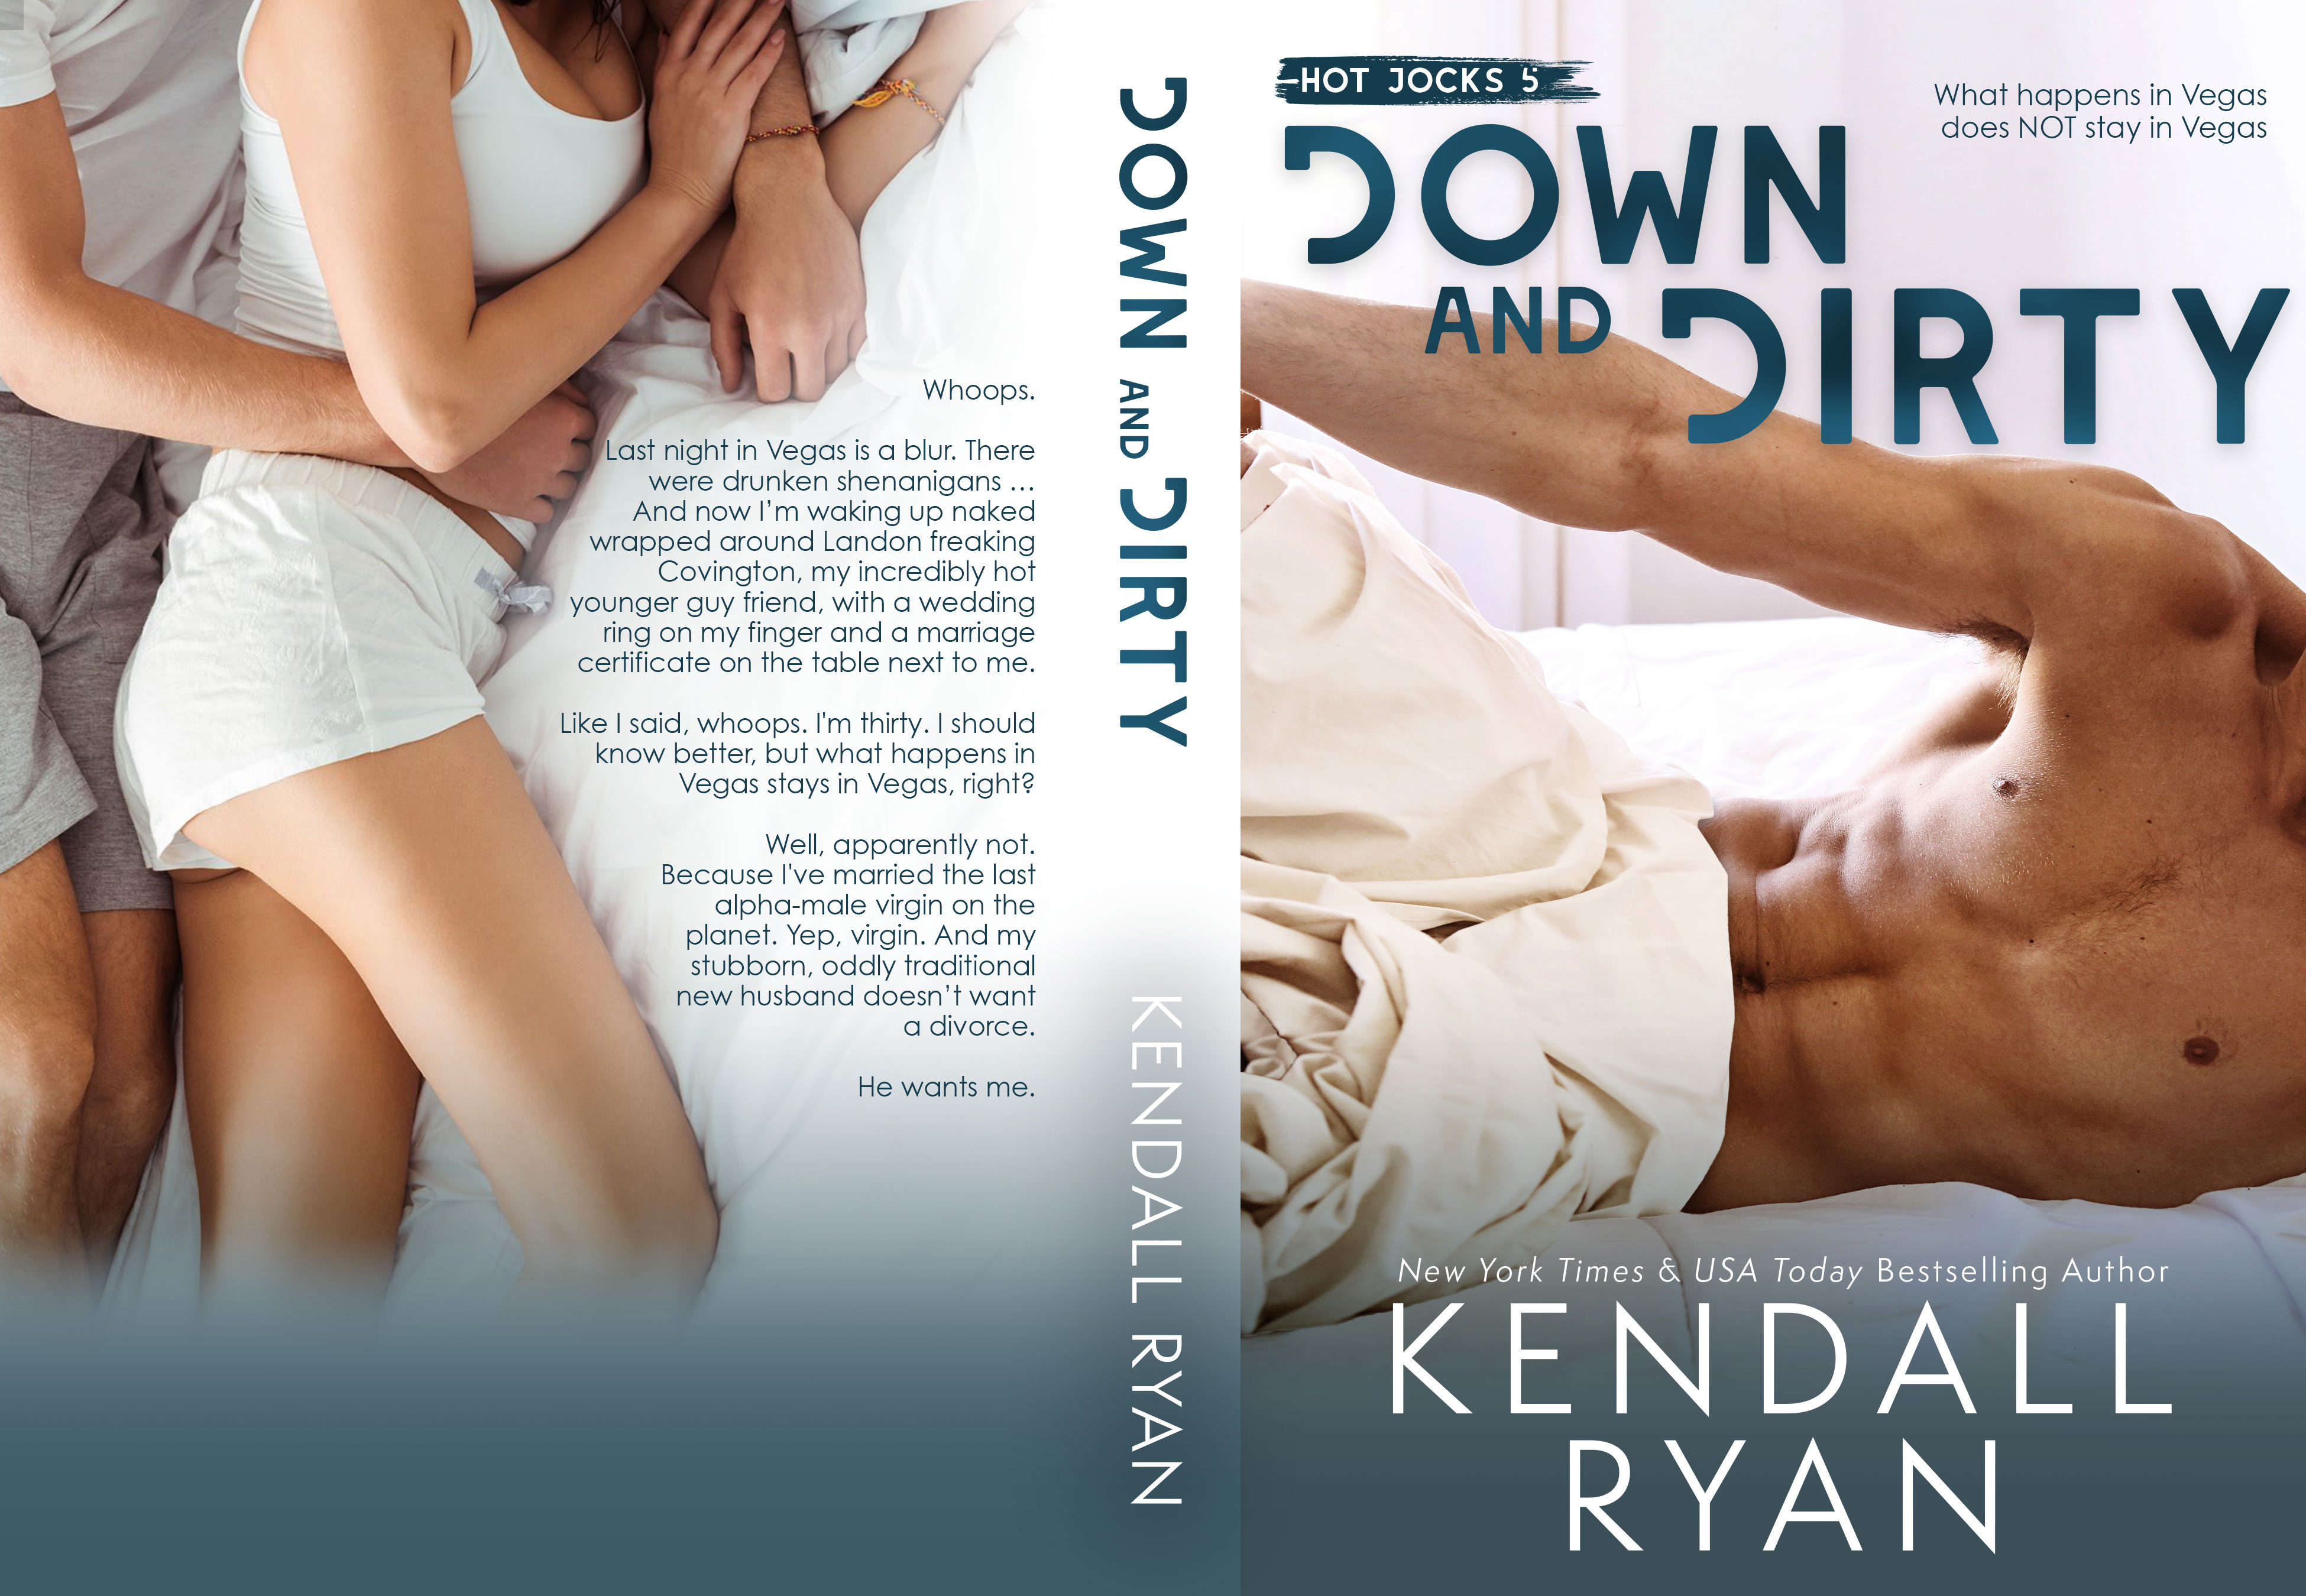 Down And Dirty - Kendall Ryan (Hot Jocks #5)